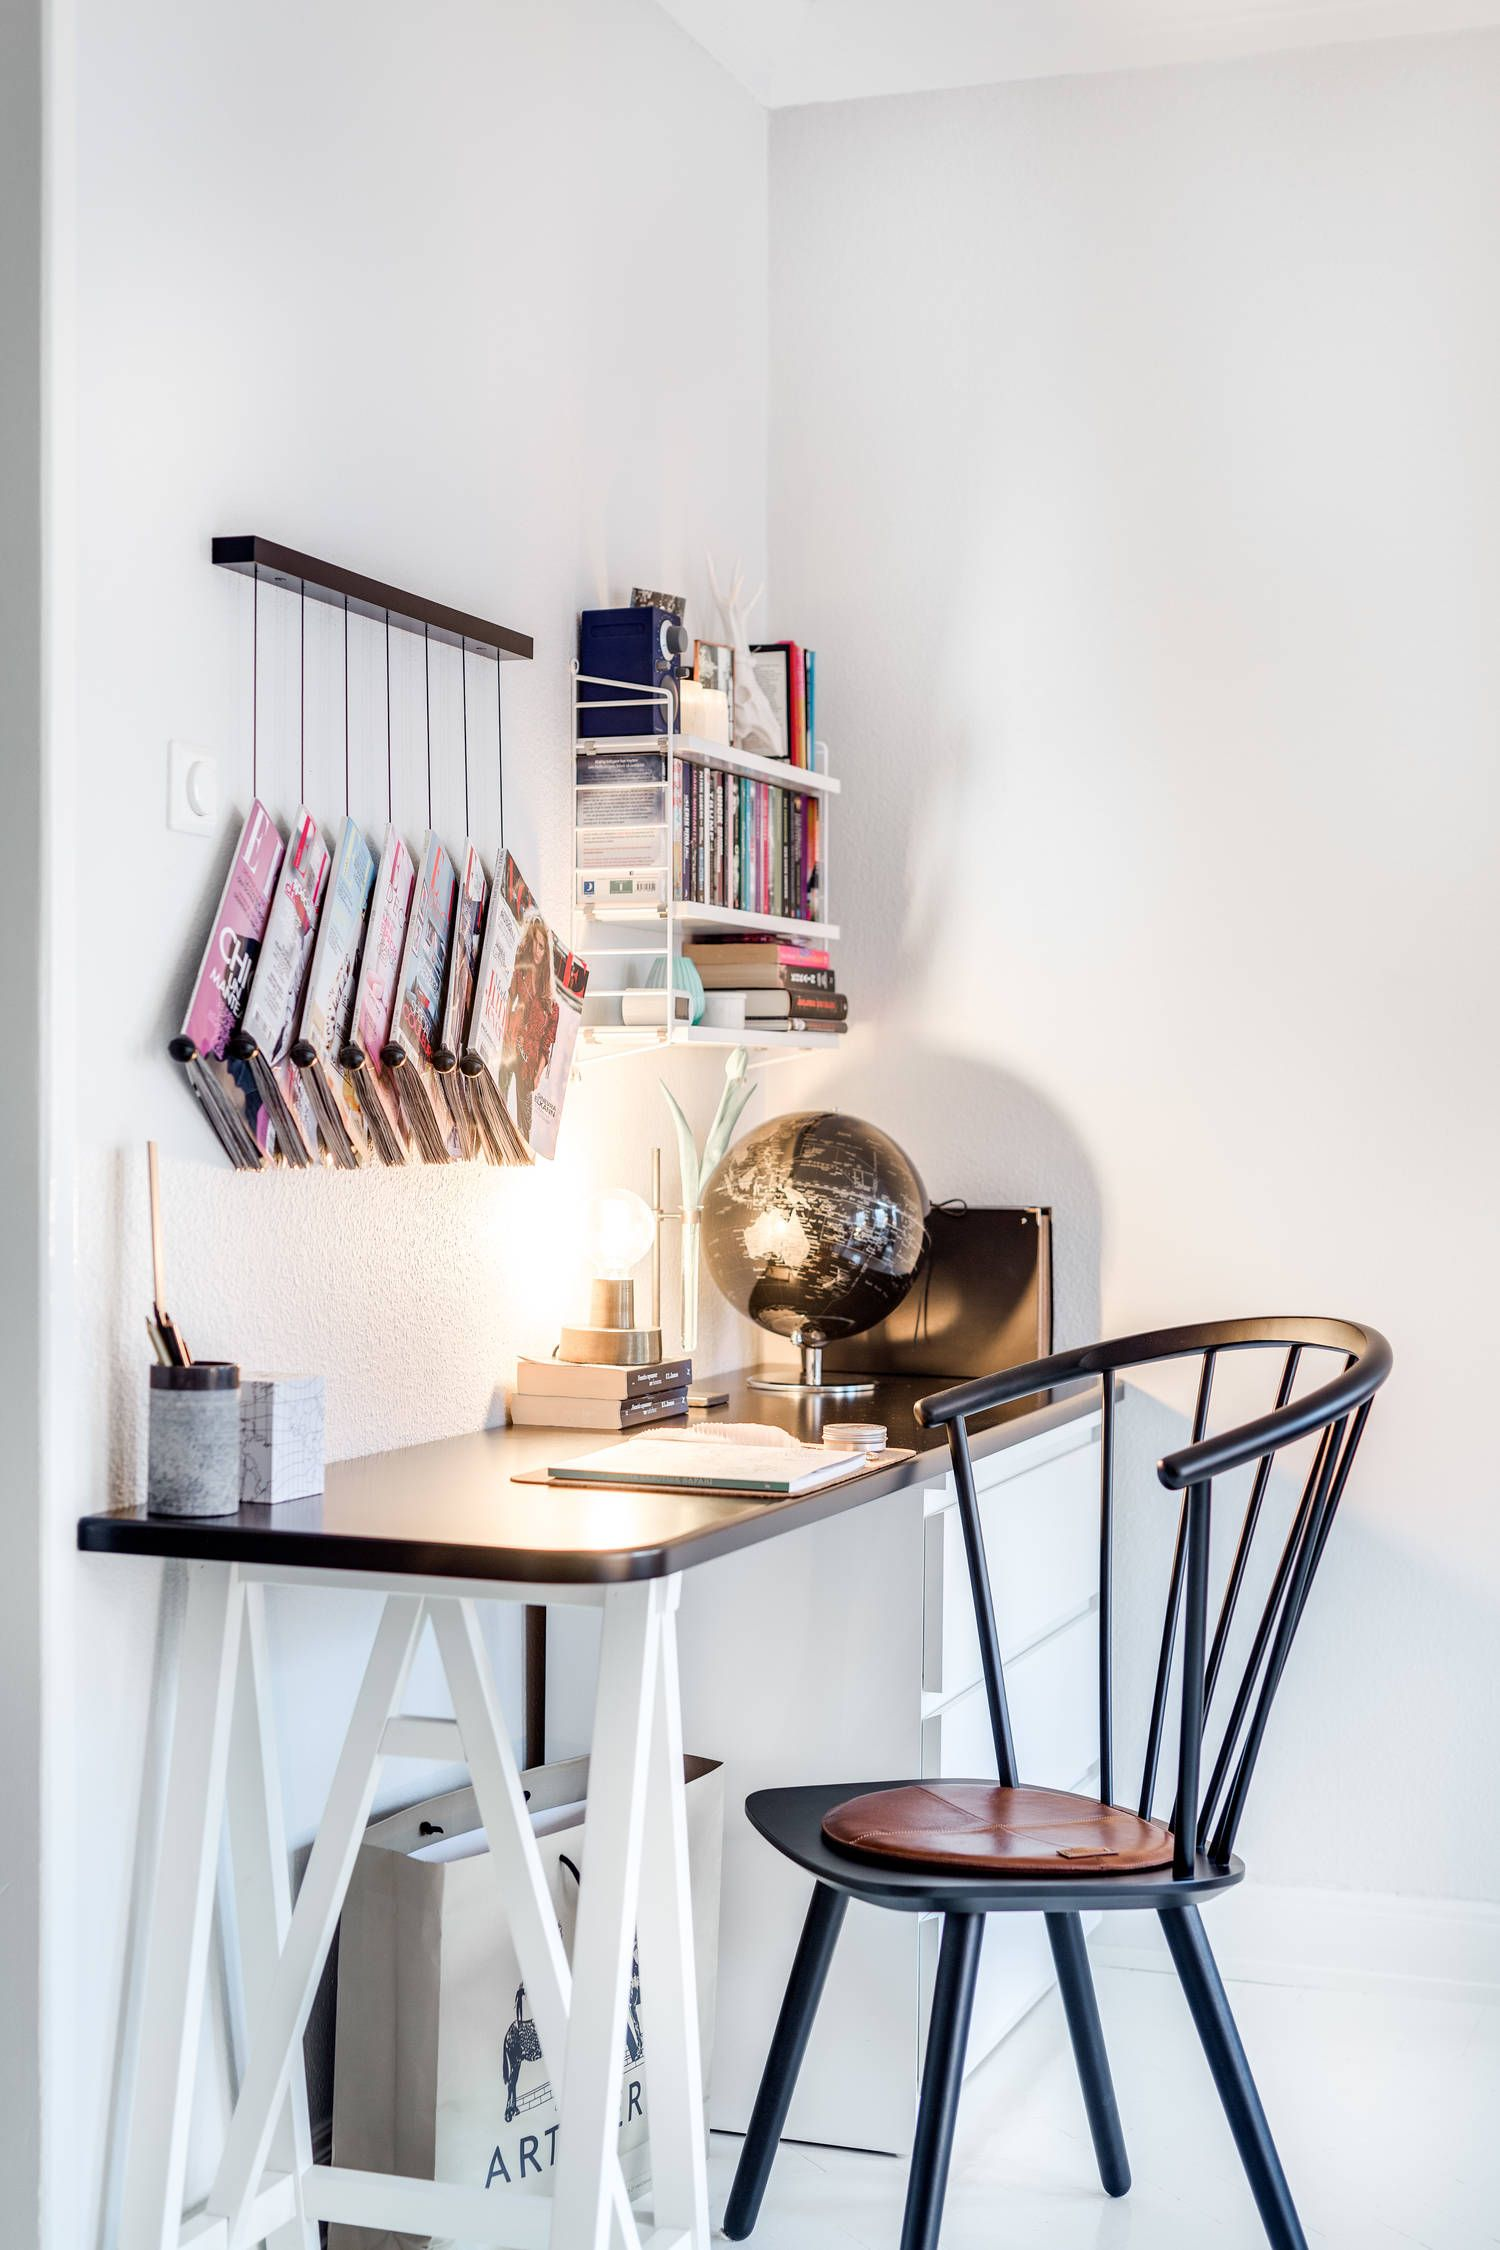 Home office interior södra vägen   boss workspaces  pinterest  spaces interiors and